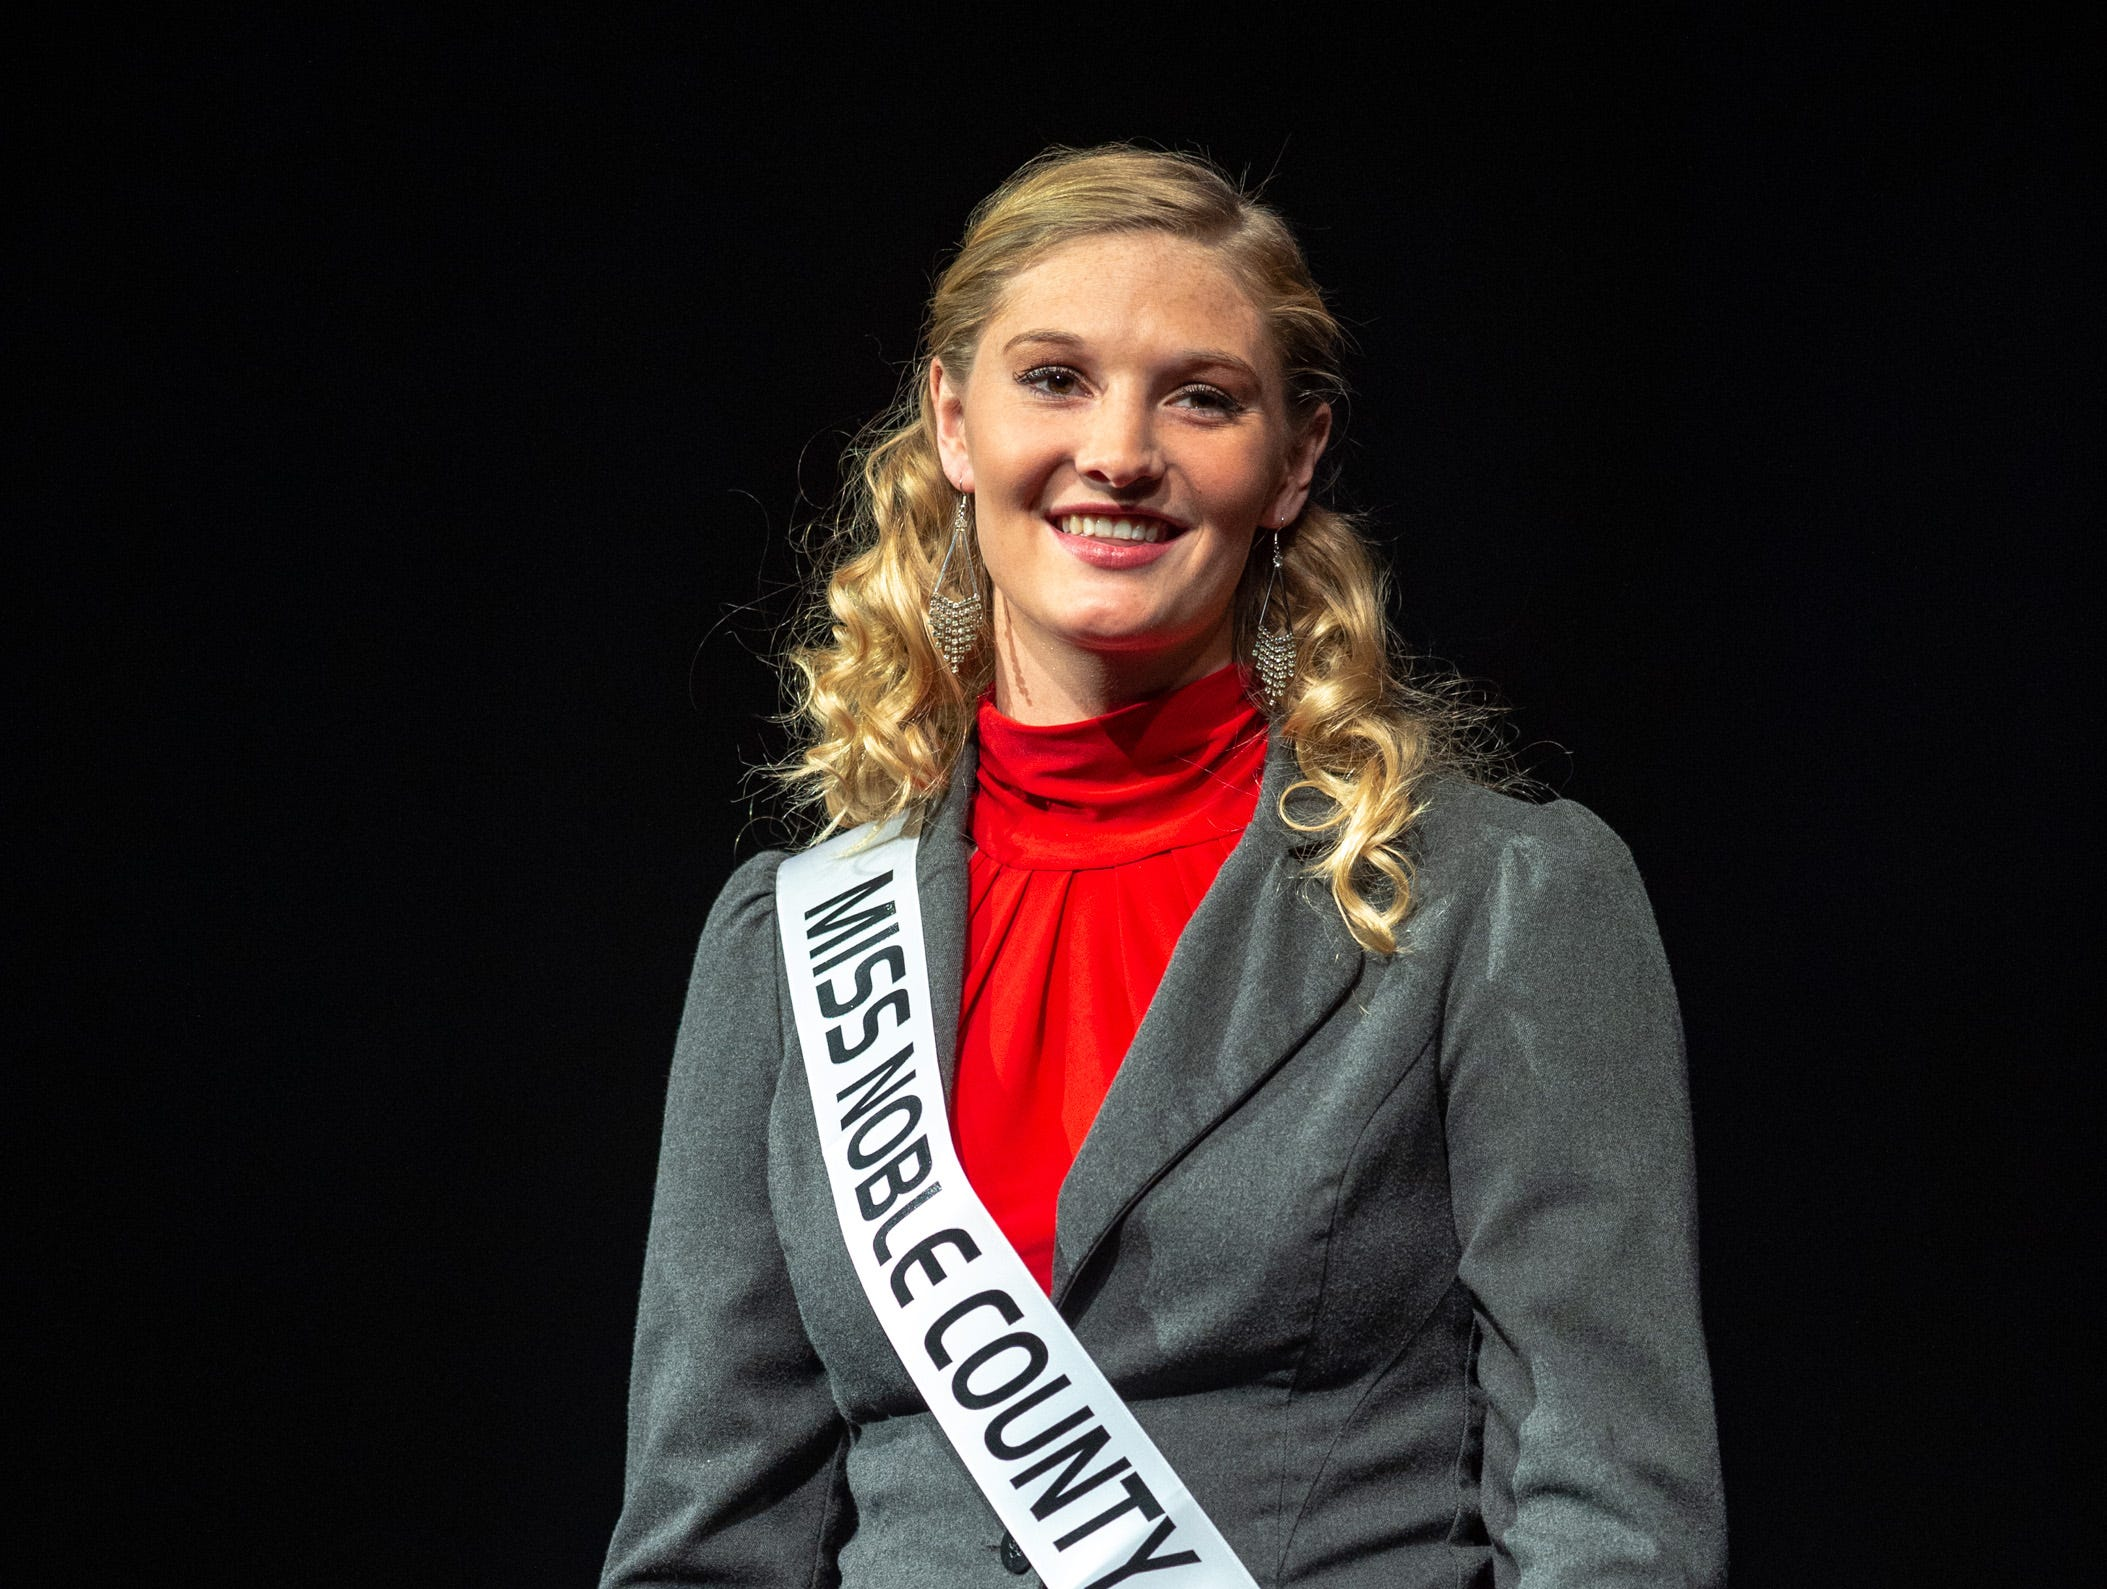 Miss Noble County, Kaylie Warble, during the 61st Indiana State Fair Queen Pageant at the Indiana State Fairgrounds in Indianapolis on Sunday, Jan. 6, 2019. Miss Benton County, Halle Shoults, was crowned the 2019 Indiana State Fair Queen.